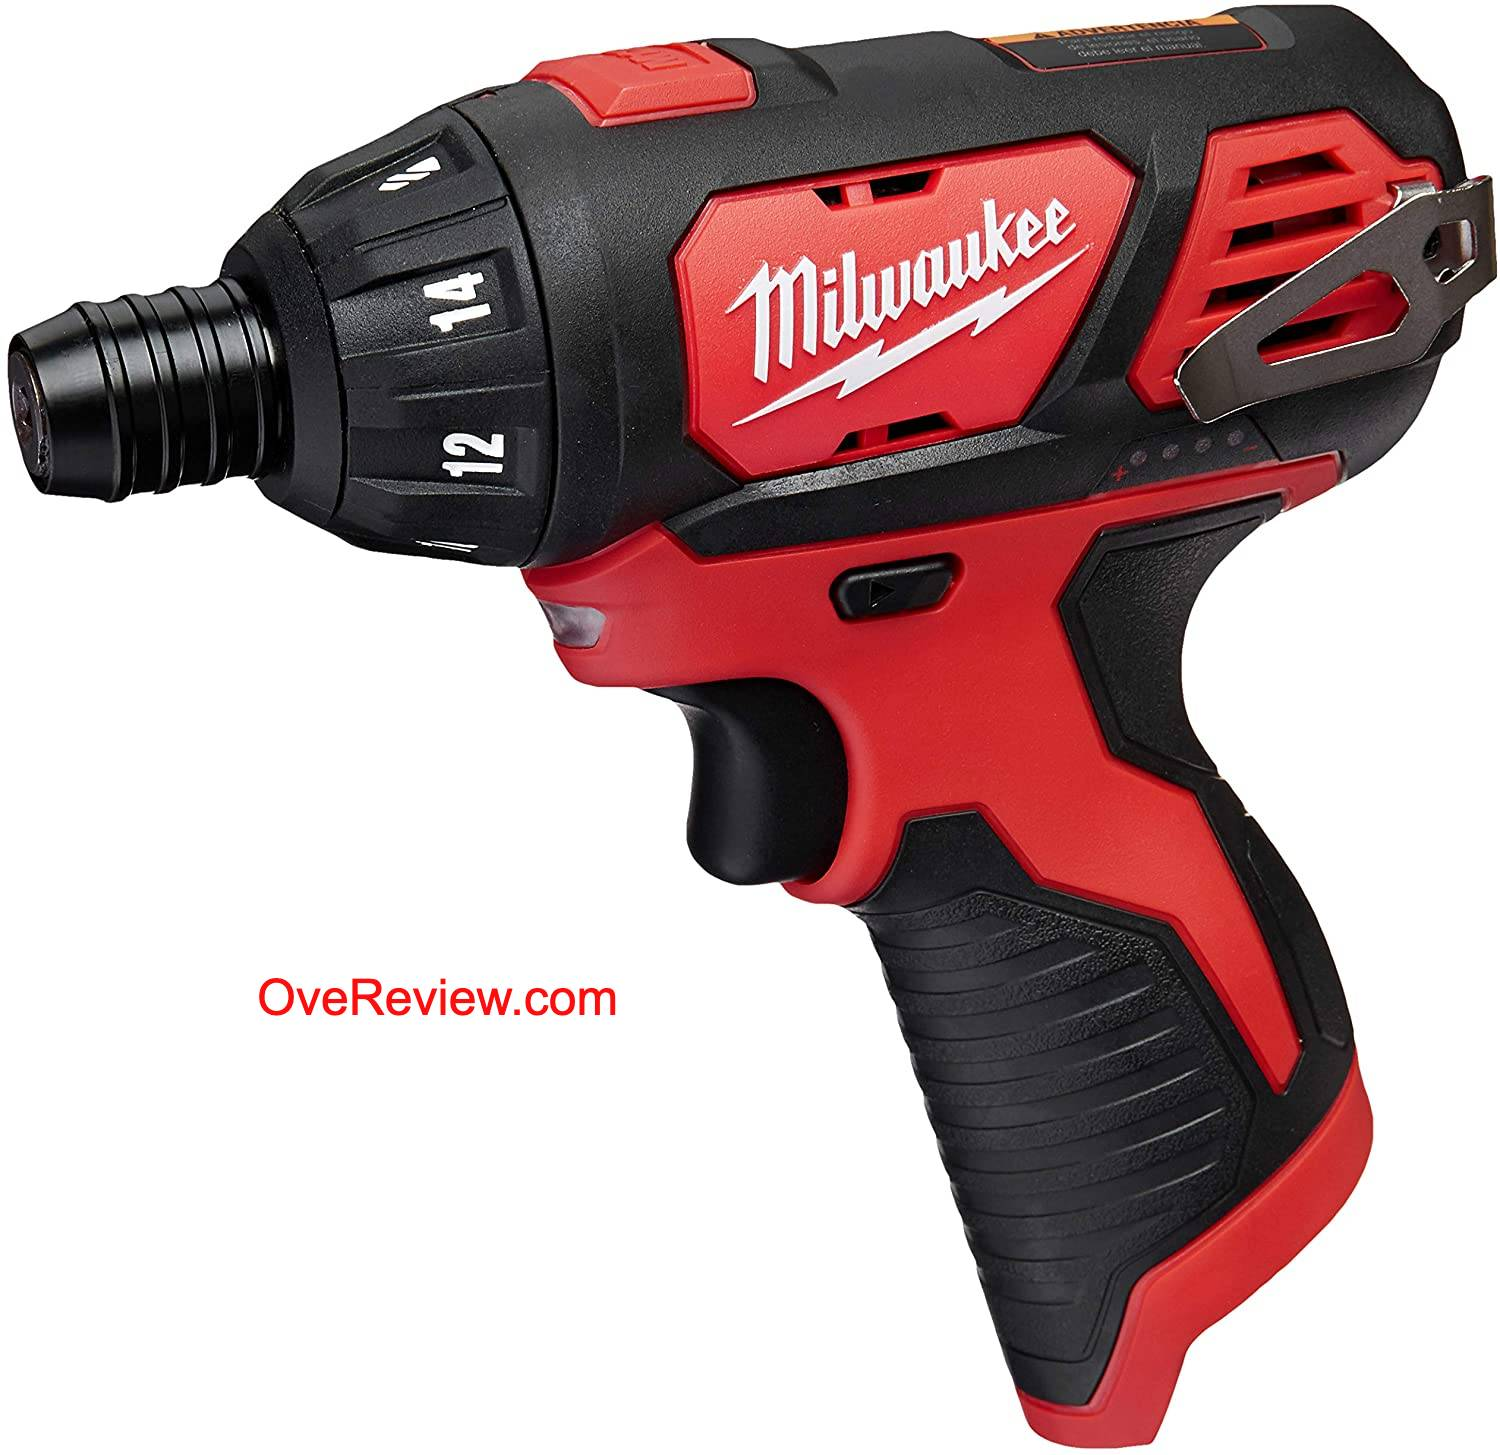 12 Best Cordless Screwdrivers of [year] - {Buyer's Guide} 3